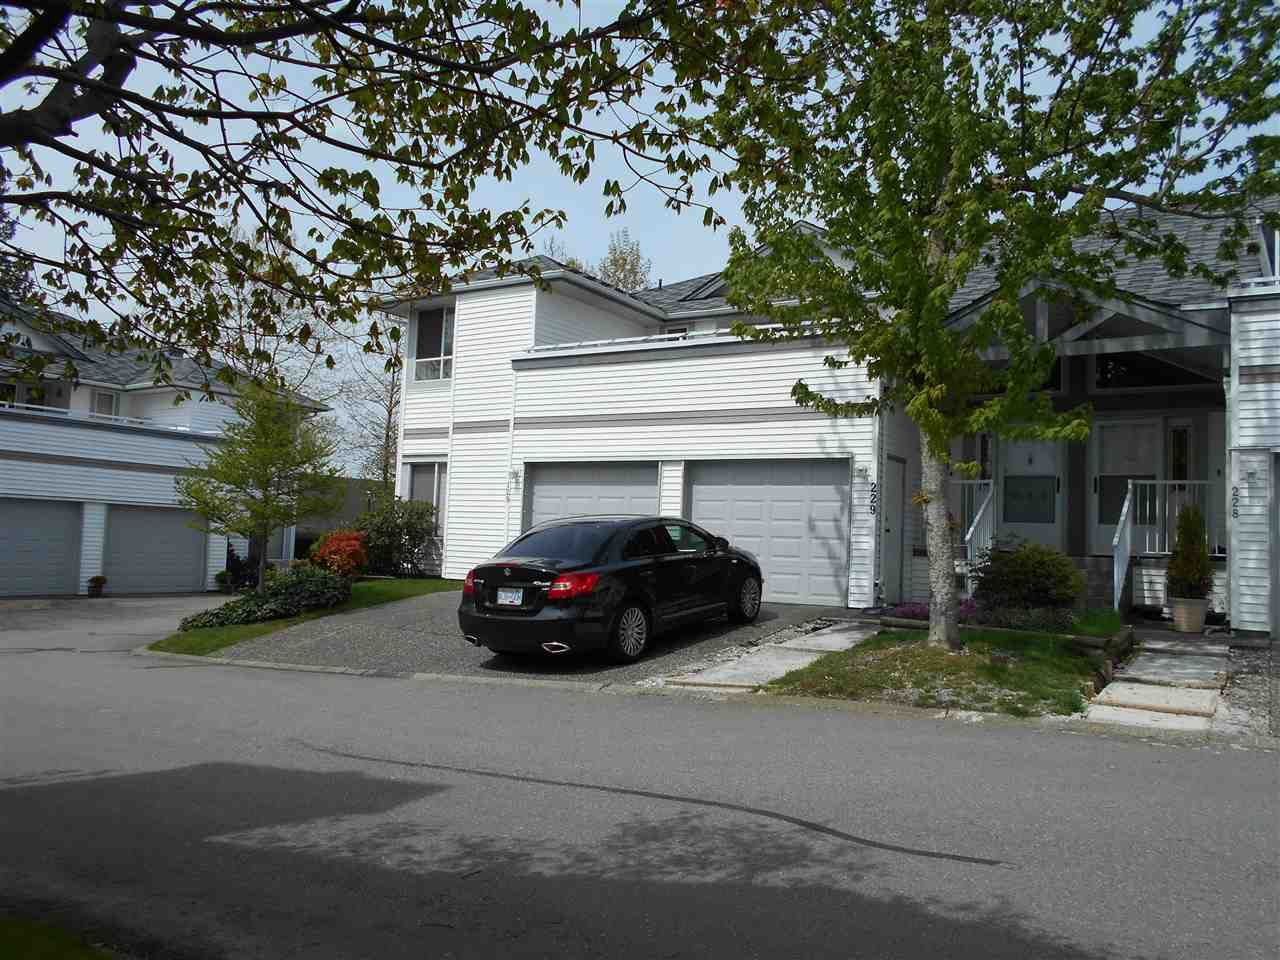 Main Photo: 229 13895 102 AVENUE in : Whalley Townhouse for sale (North Surrey)  : MLS®# R2161644